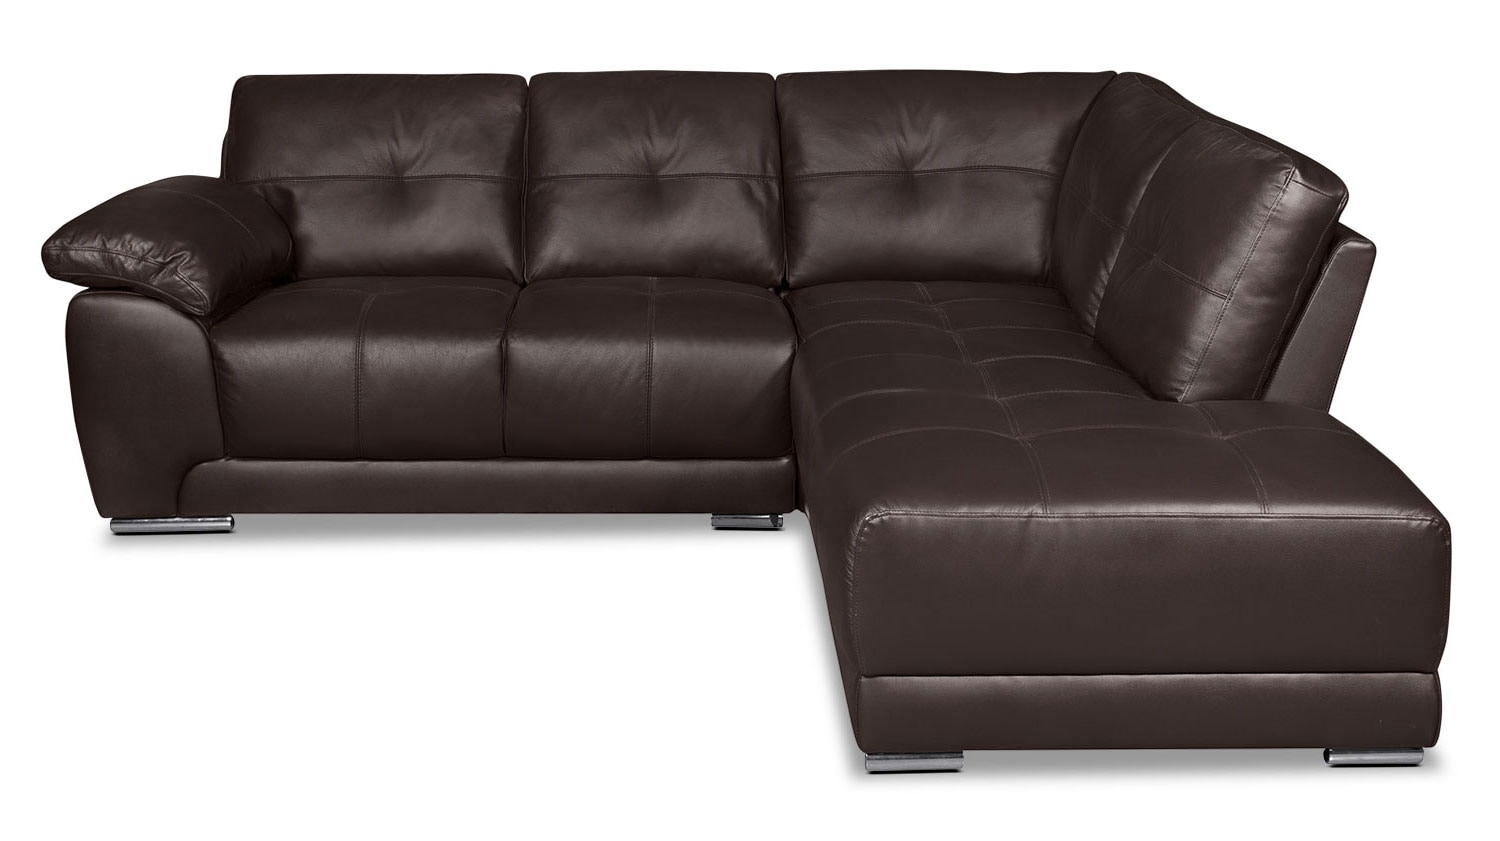 Living Room Furniture - Rylee 2-Piece Genuine Leather Right-Facing Sectional - Brown